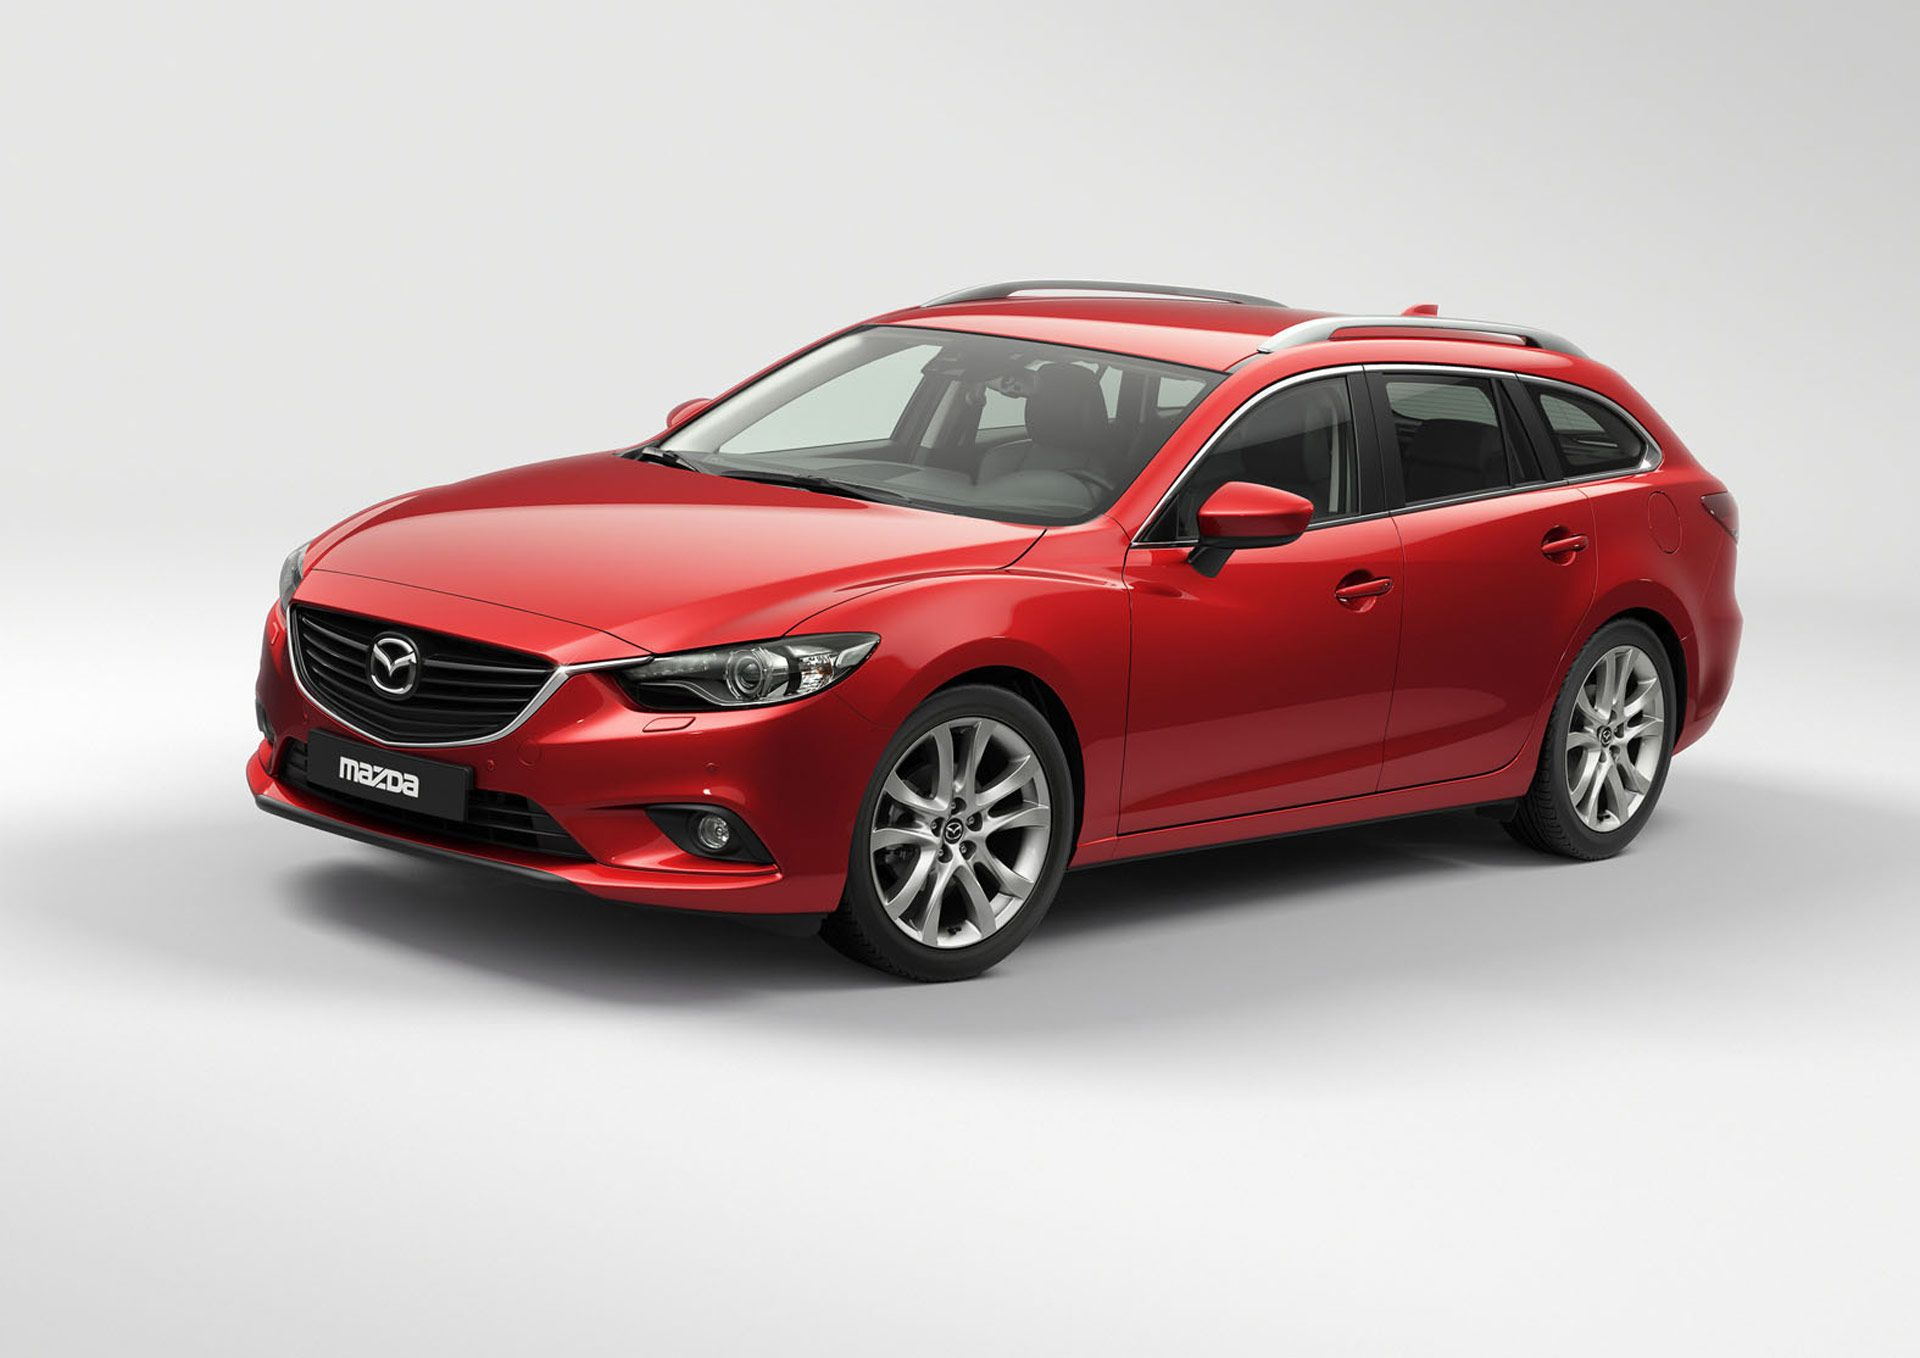 Pin by walls auto on Cool Car Wallpapers | Mazda 6 wagon